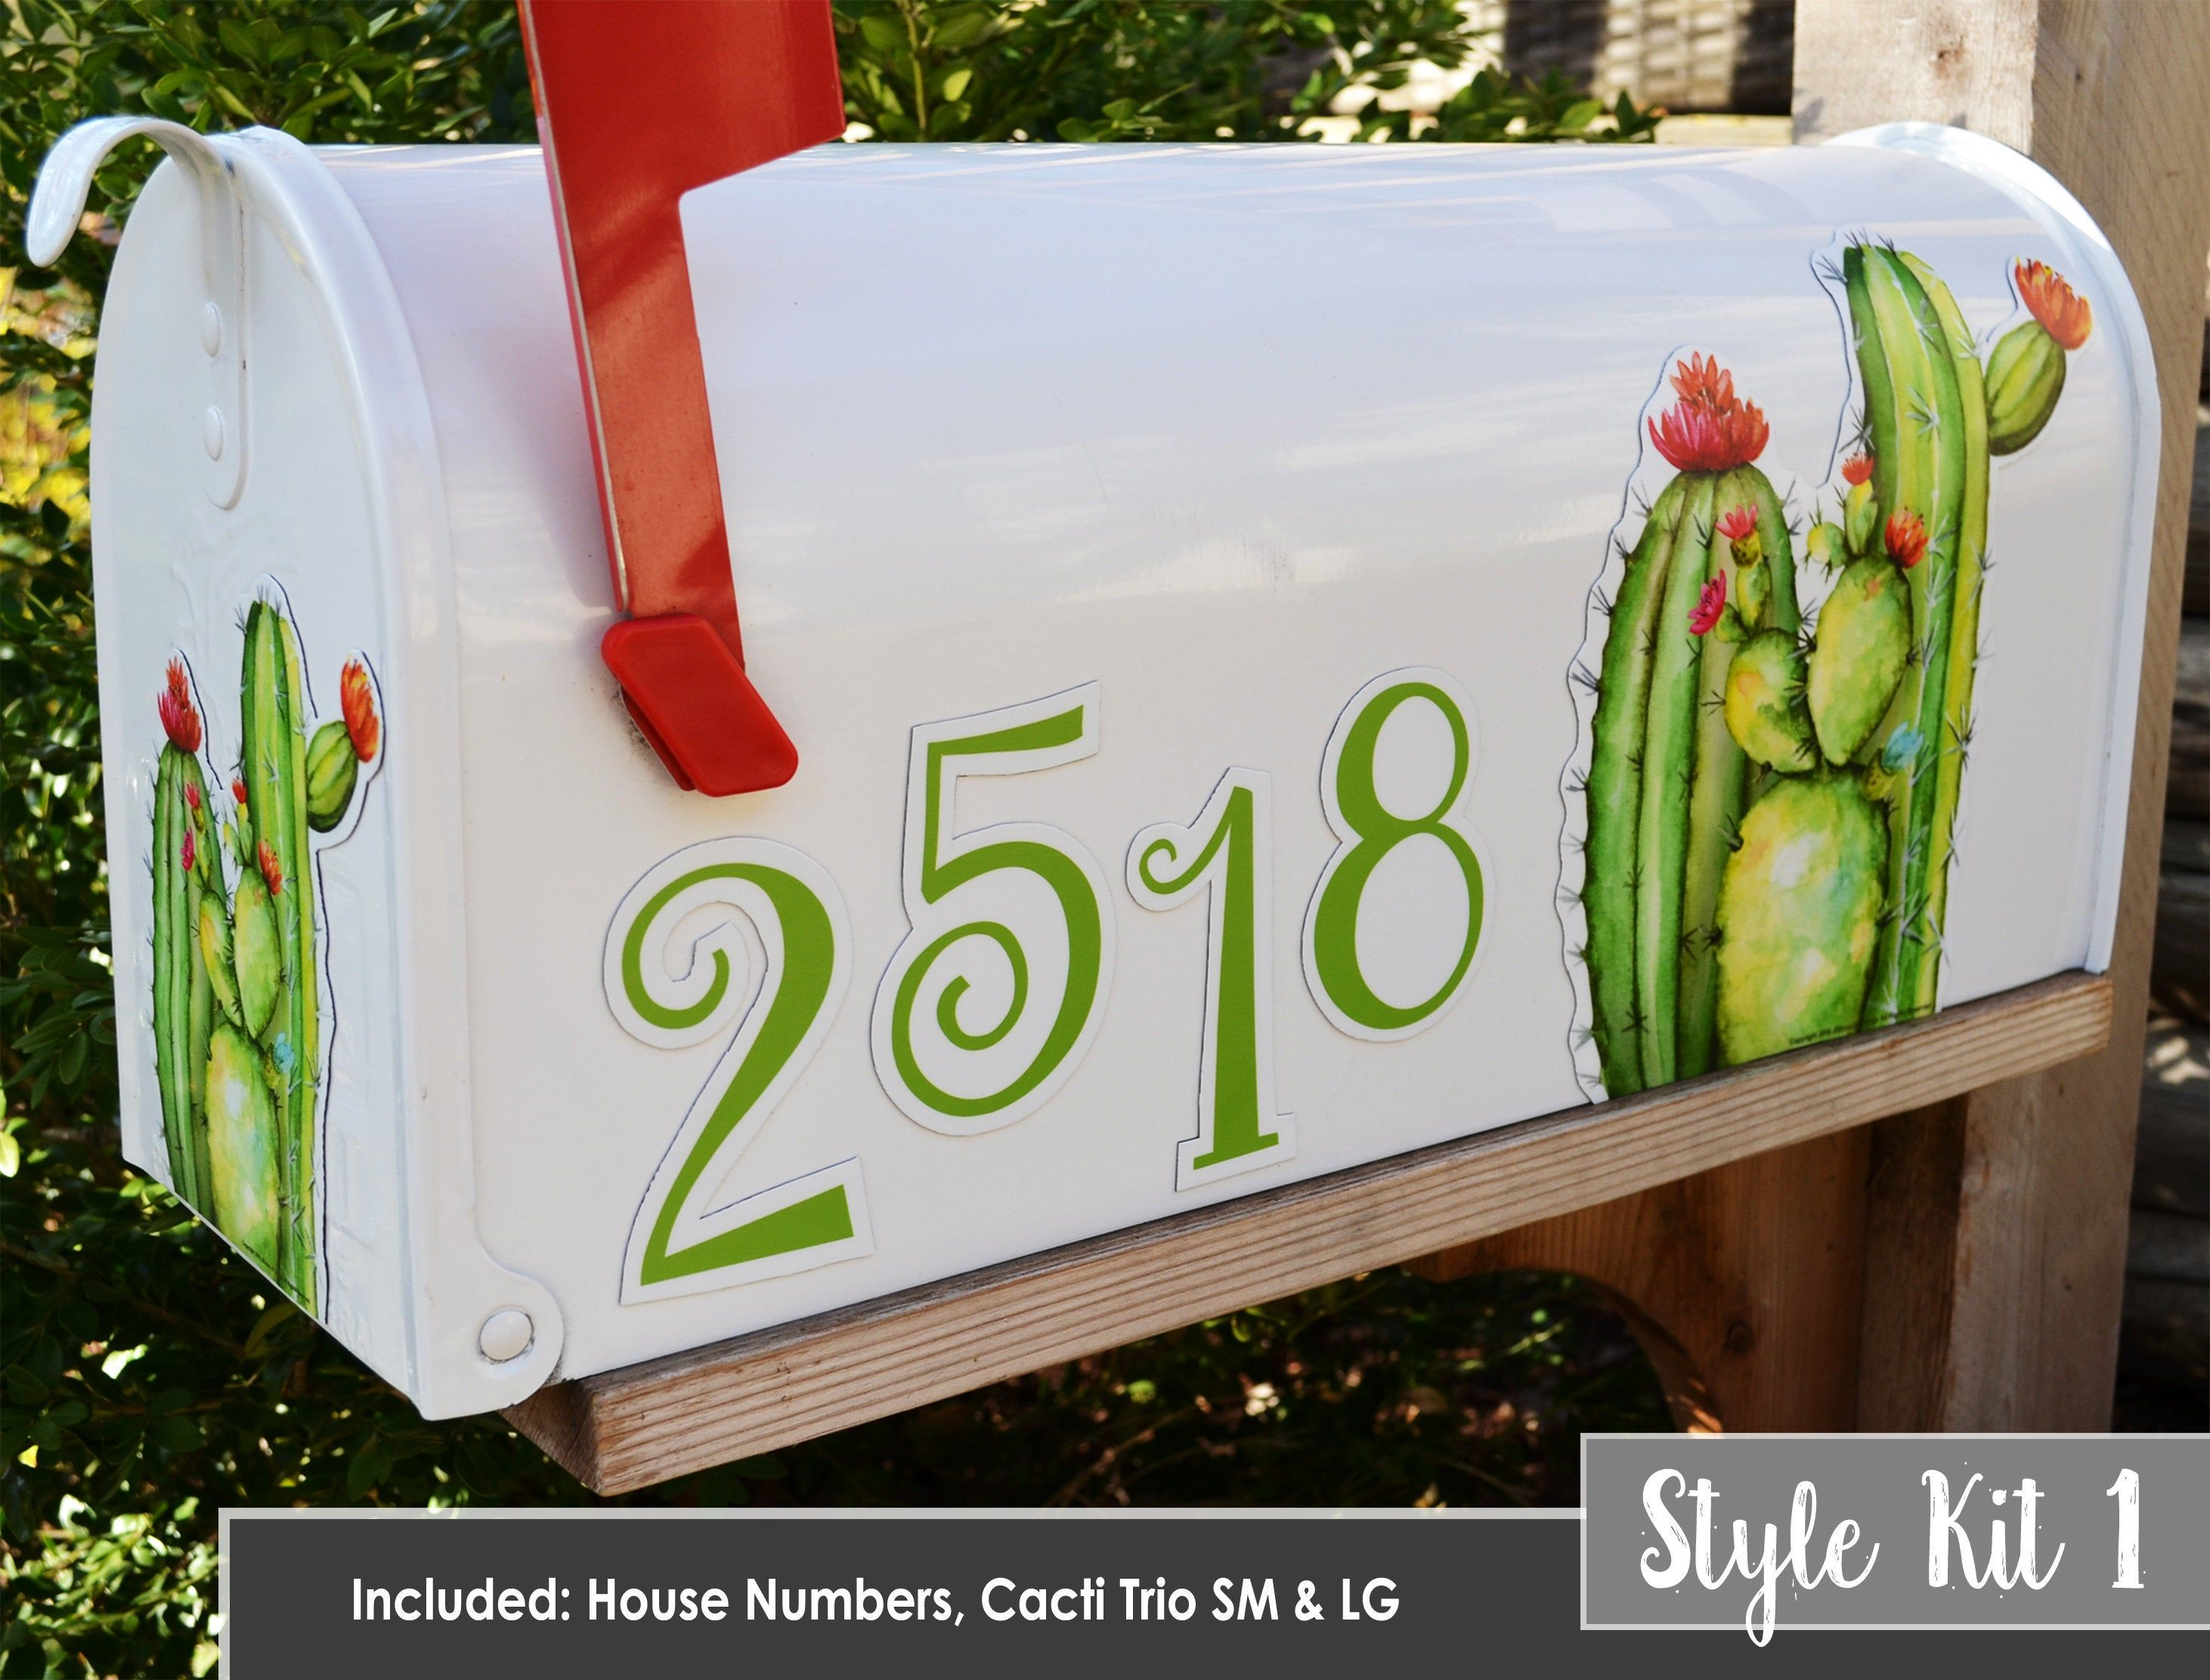 Magnetic Mailbox Cover Magnet Cactus Decor Flower Cacti Cactuses Desert Southwest Prickly Pear Custom House Or Mailbox Numbers Mail Box Car Painted Mailboxes Unique Magnets Magnetic Mailbox Covers